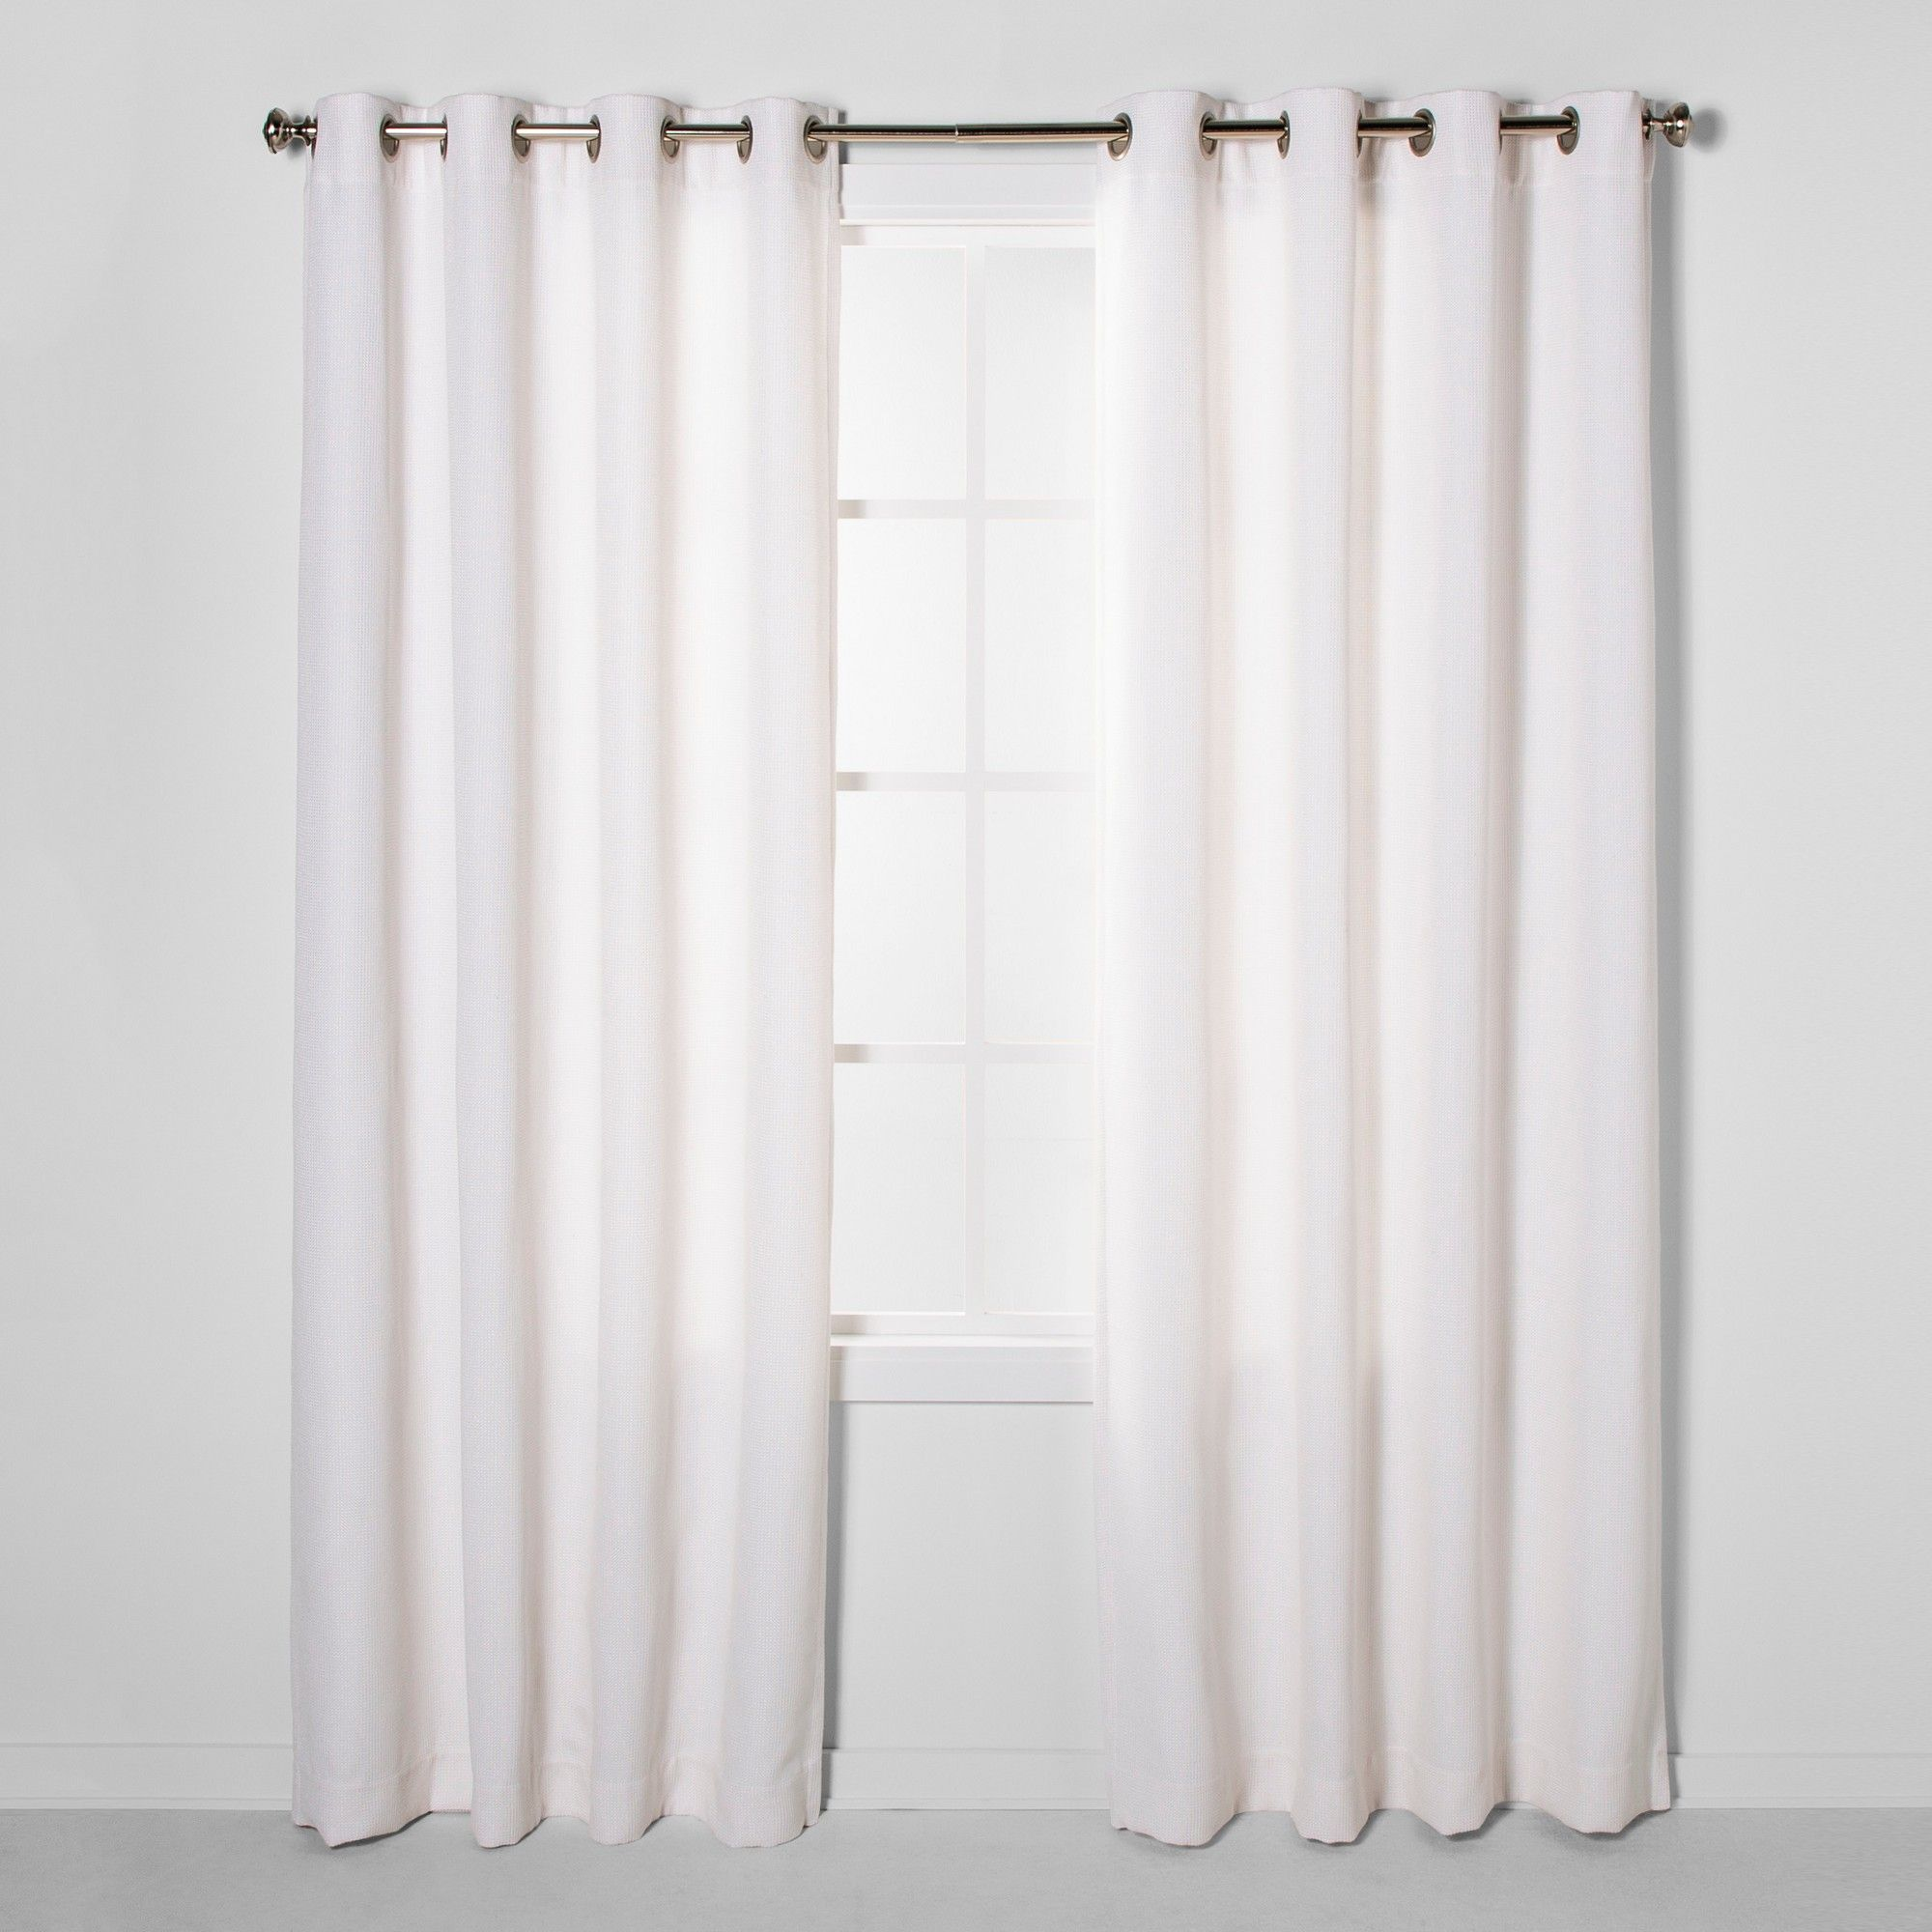 84 X50 Luster Basket Light Filtering Weave Curtain Panels Cream